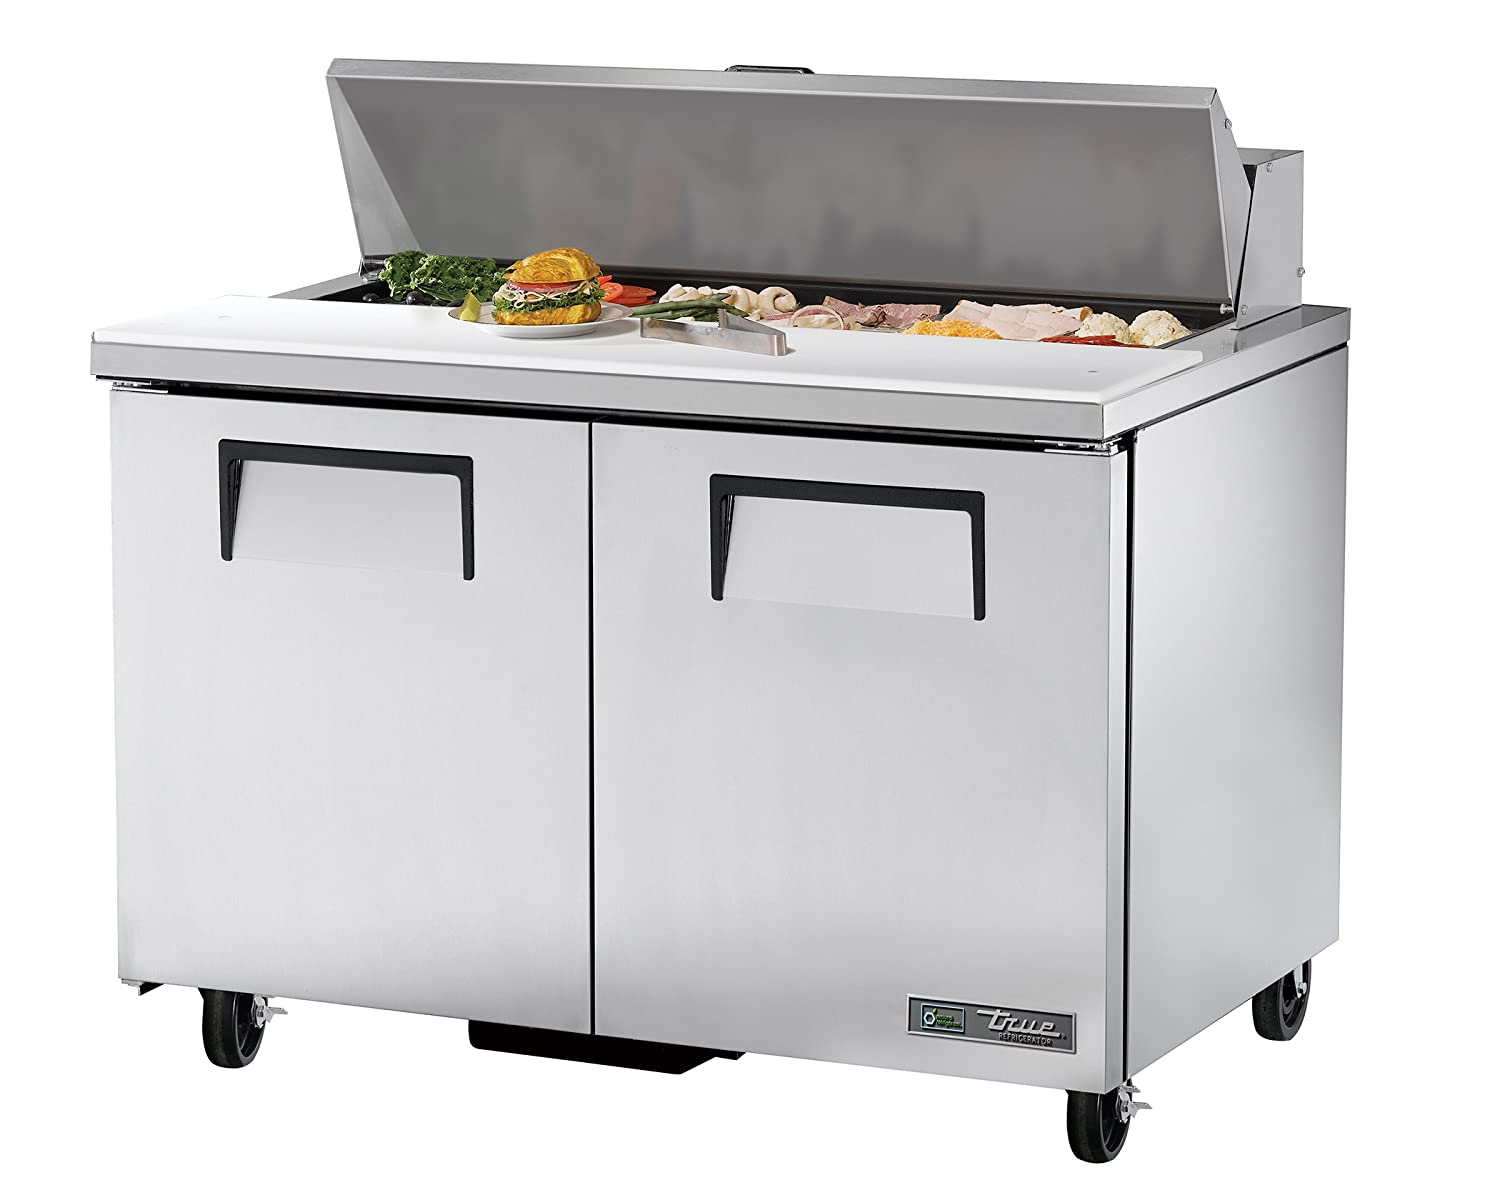 True TSSU-48-12-HC Commercial Cold Food Prep Table with Hydrocarbon Refrigerant, 36.75